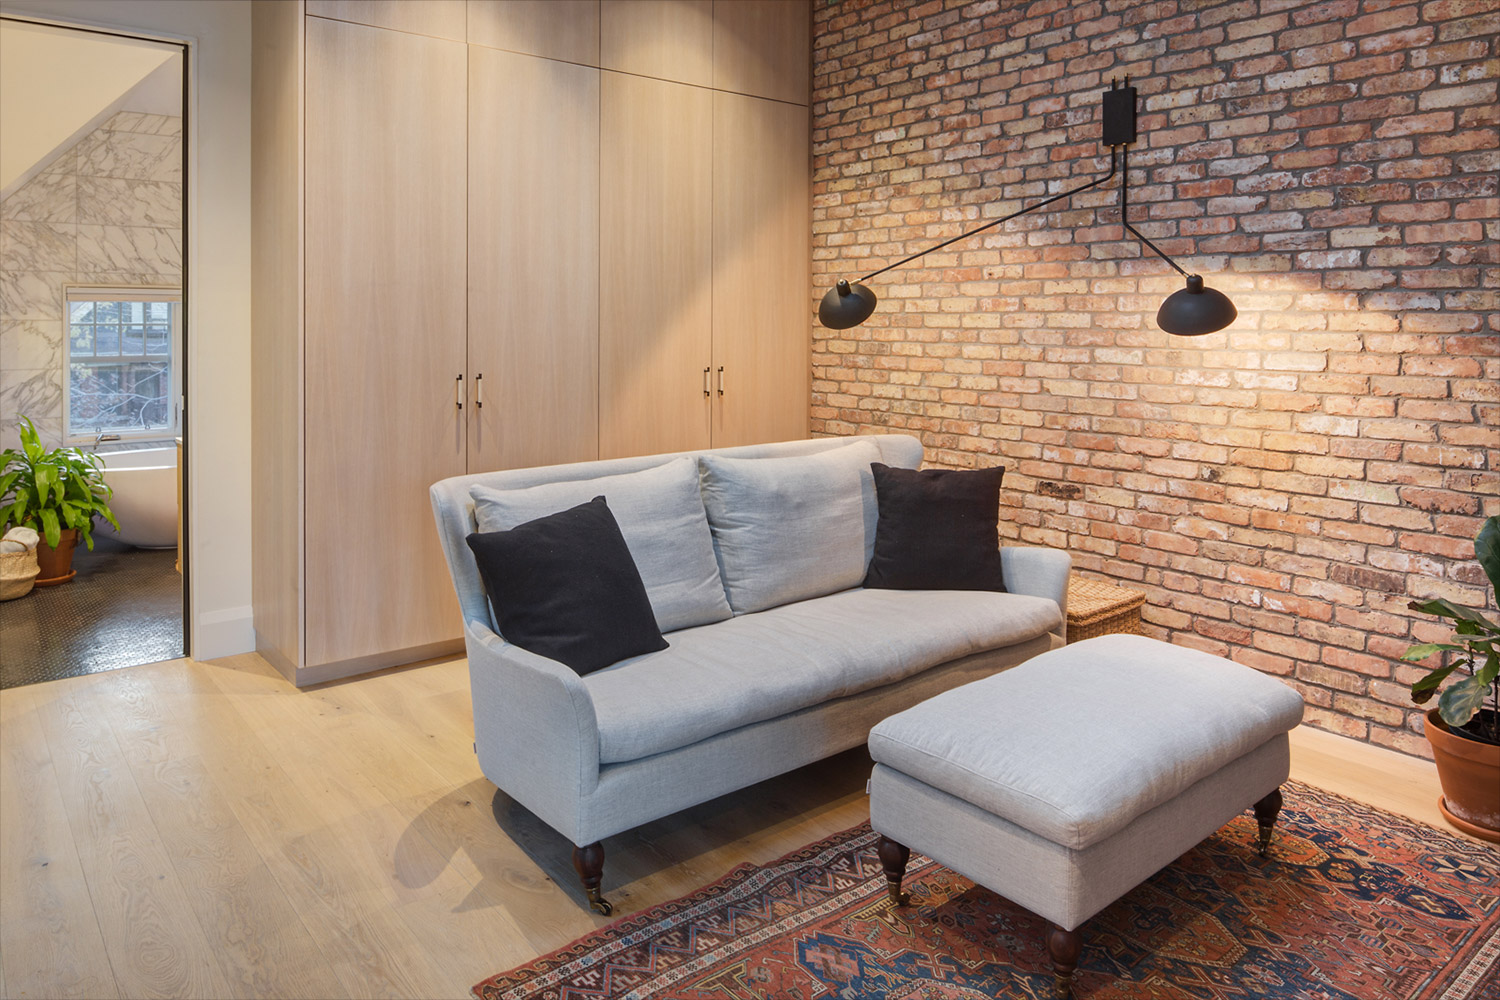 Siting room with exposed brick wall, white oak wardrobes and light gray sofa with ottoman